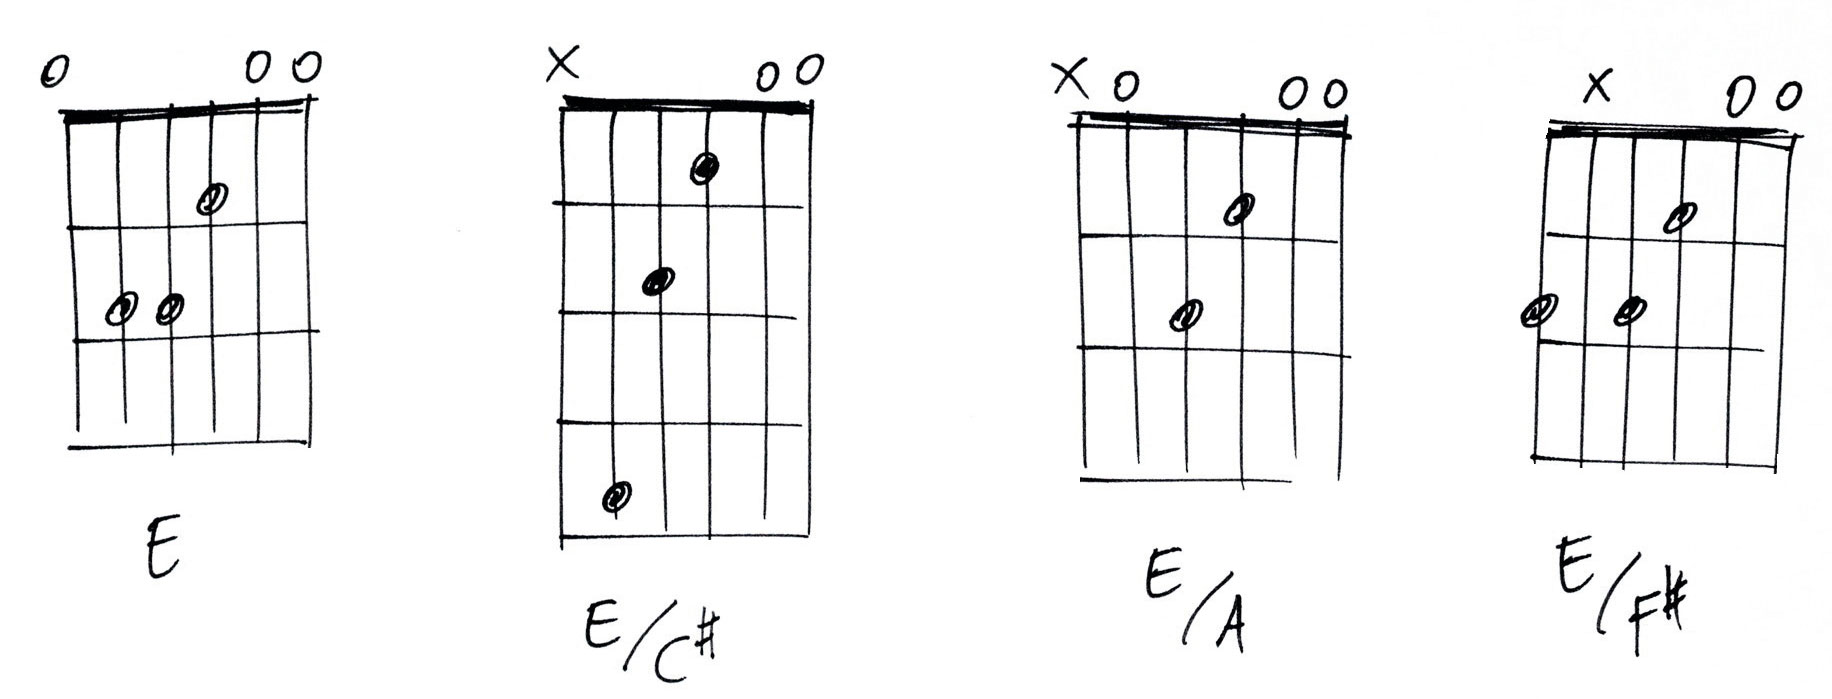 30 Day Guitar Challenge Day 7 Expand Your Chordal Knowledge With